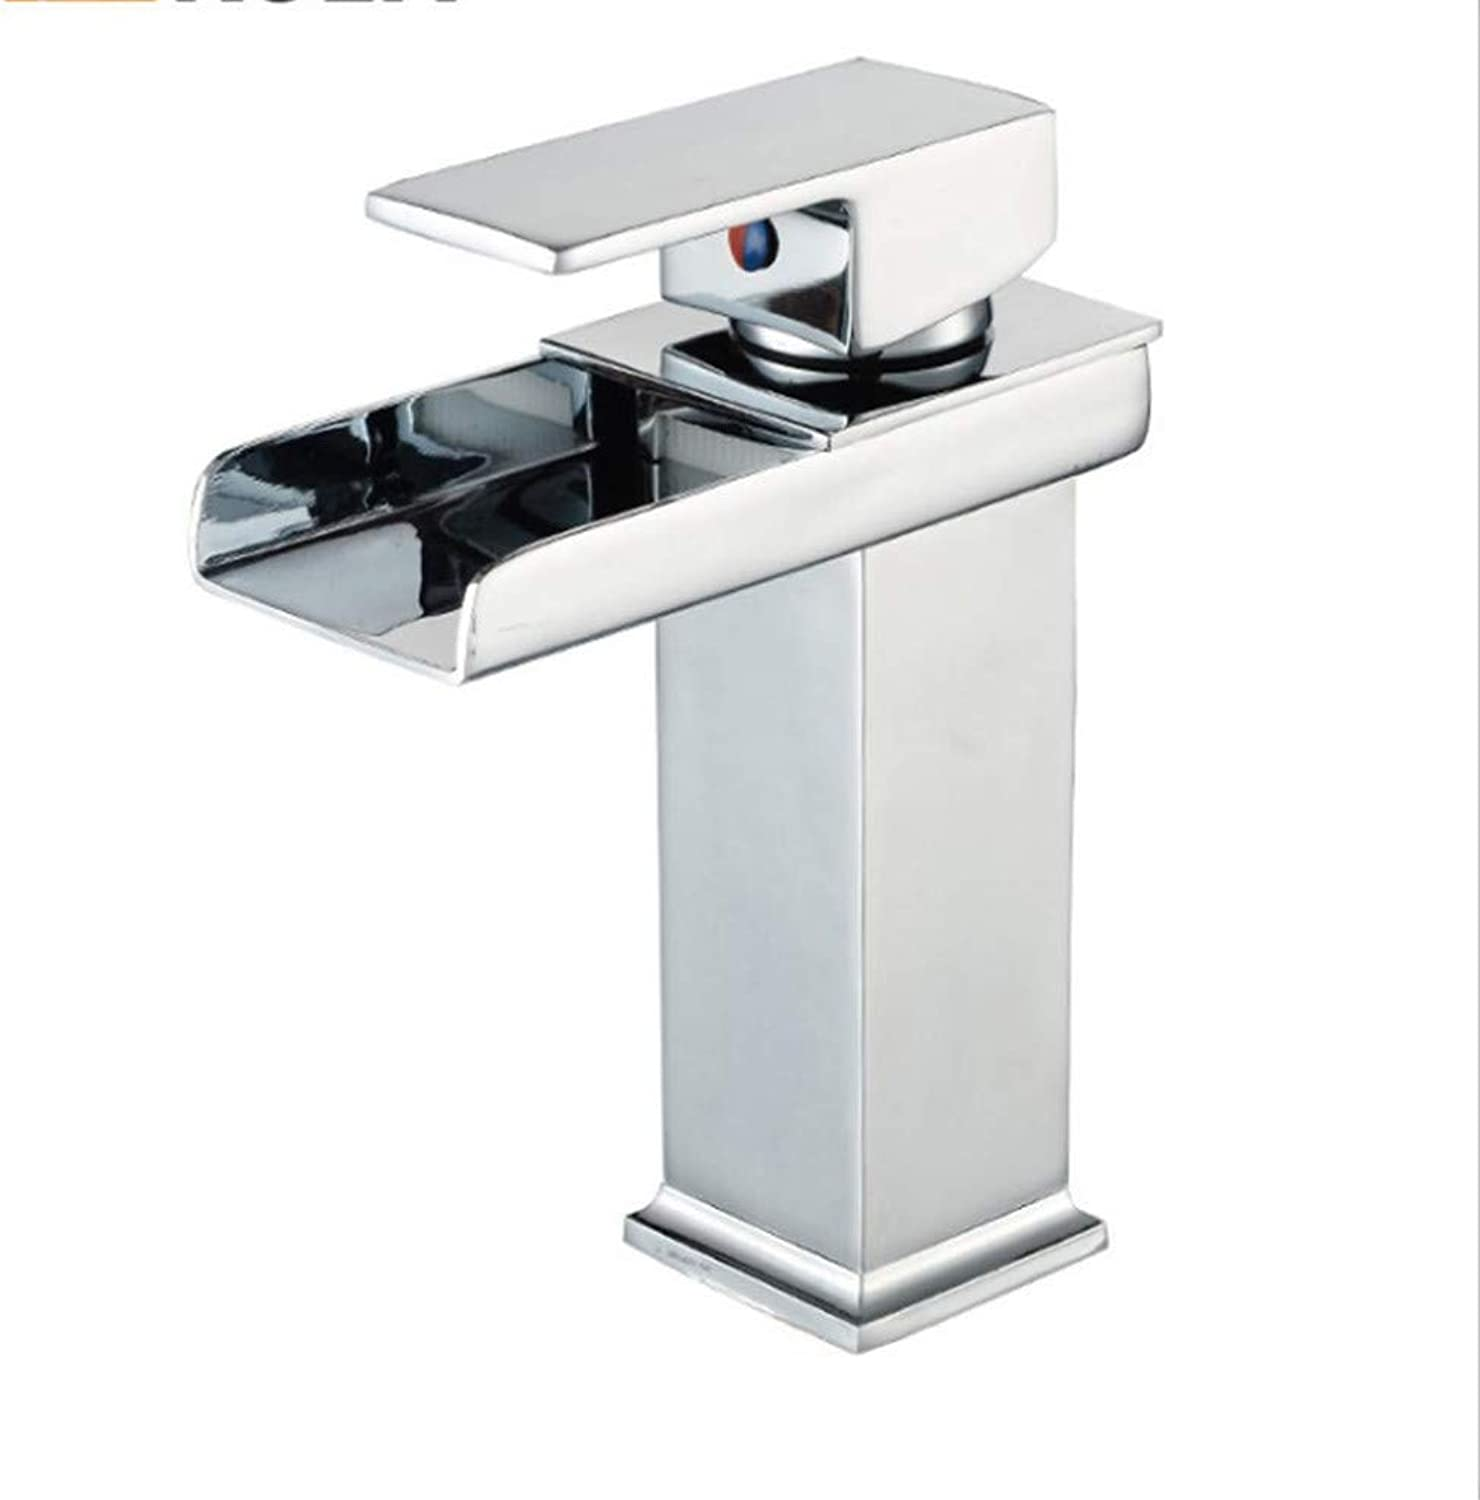 Water Tapdrinking Designer Archcopper Basin Faucet Sifang Trough Waterfall Faucet Bathroom Table Basin Faucet